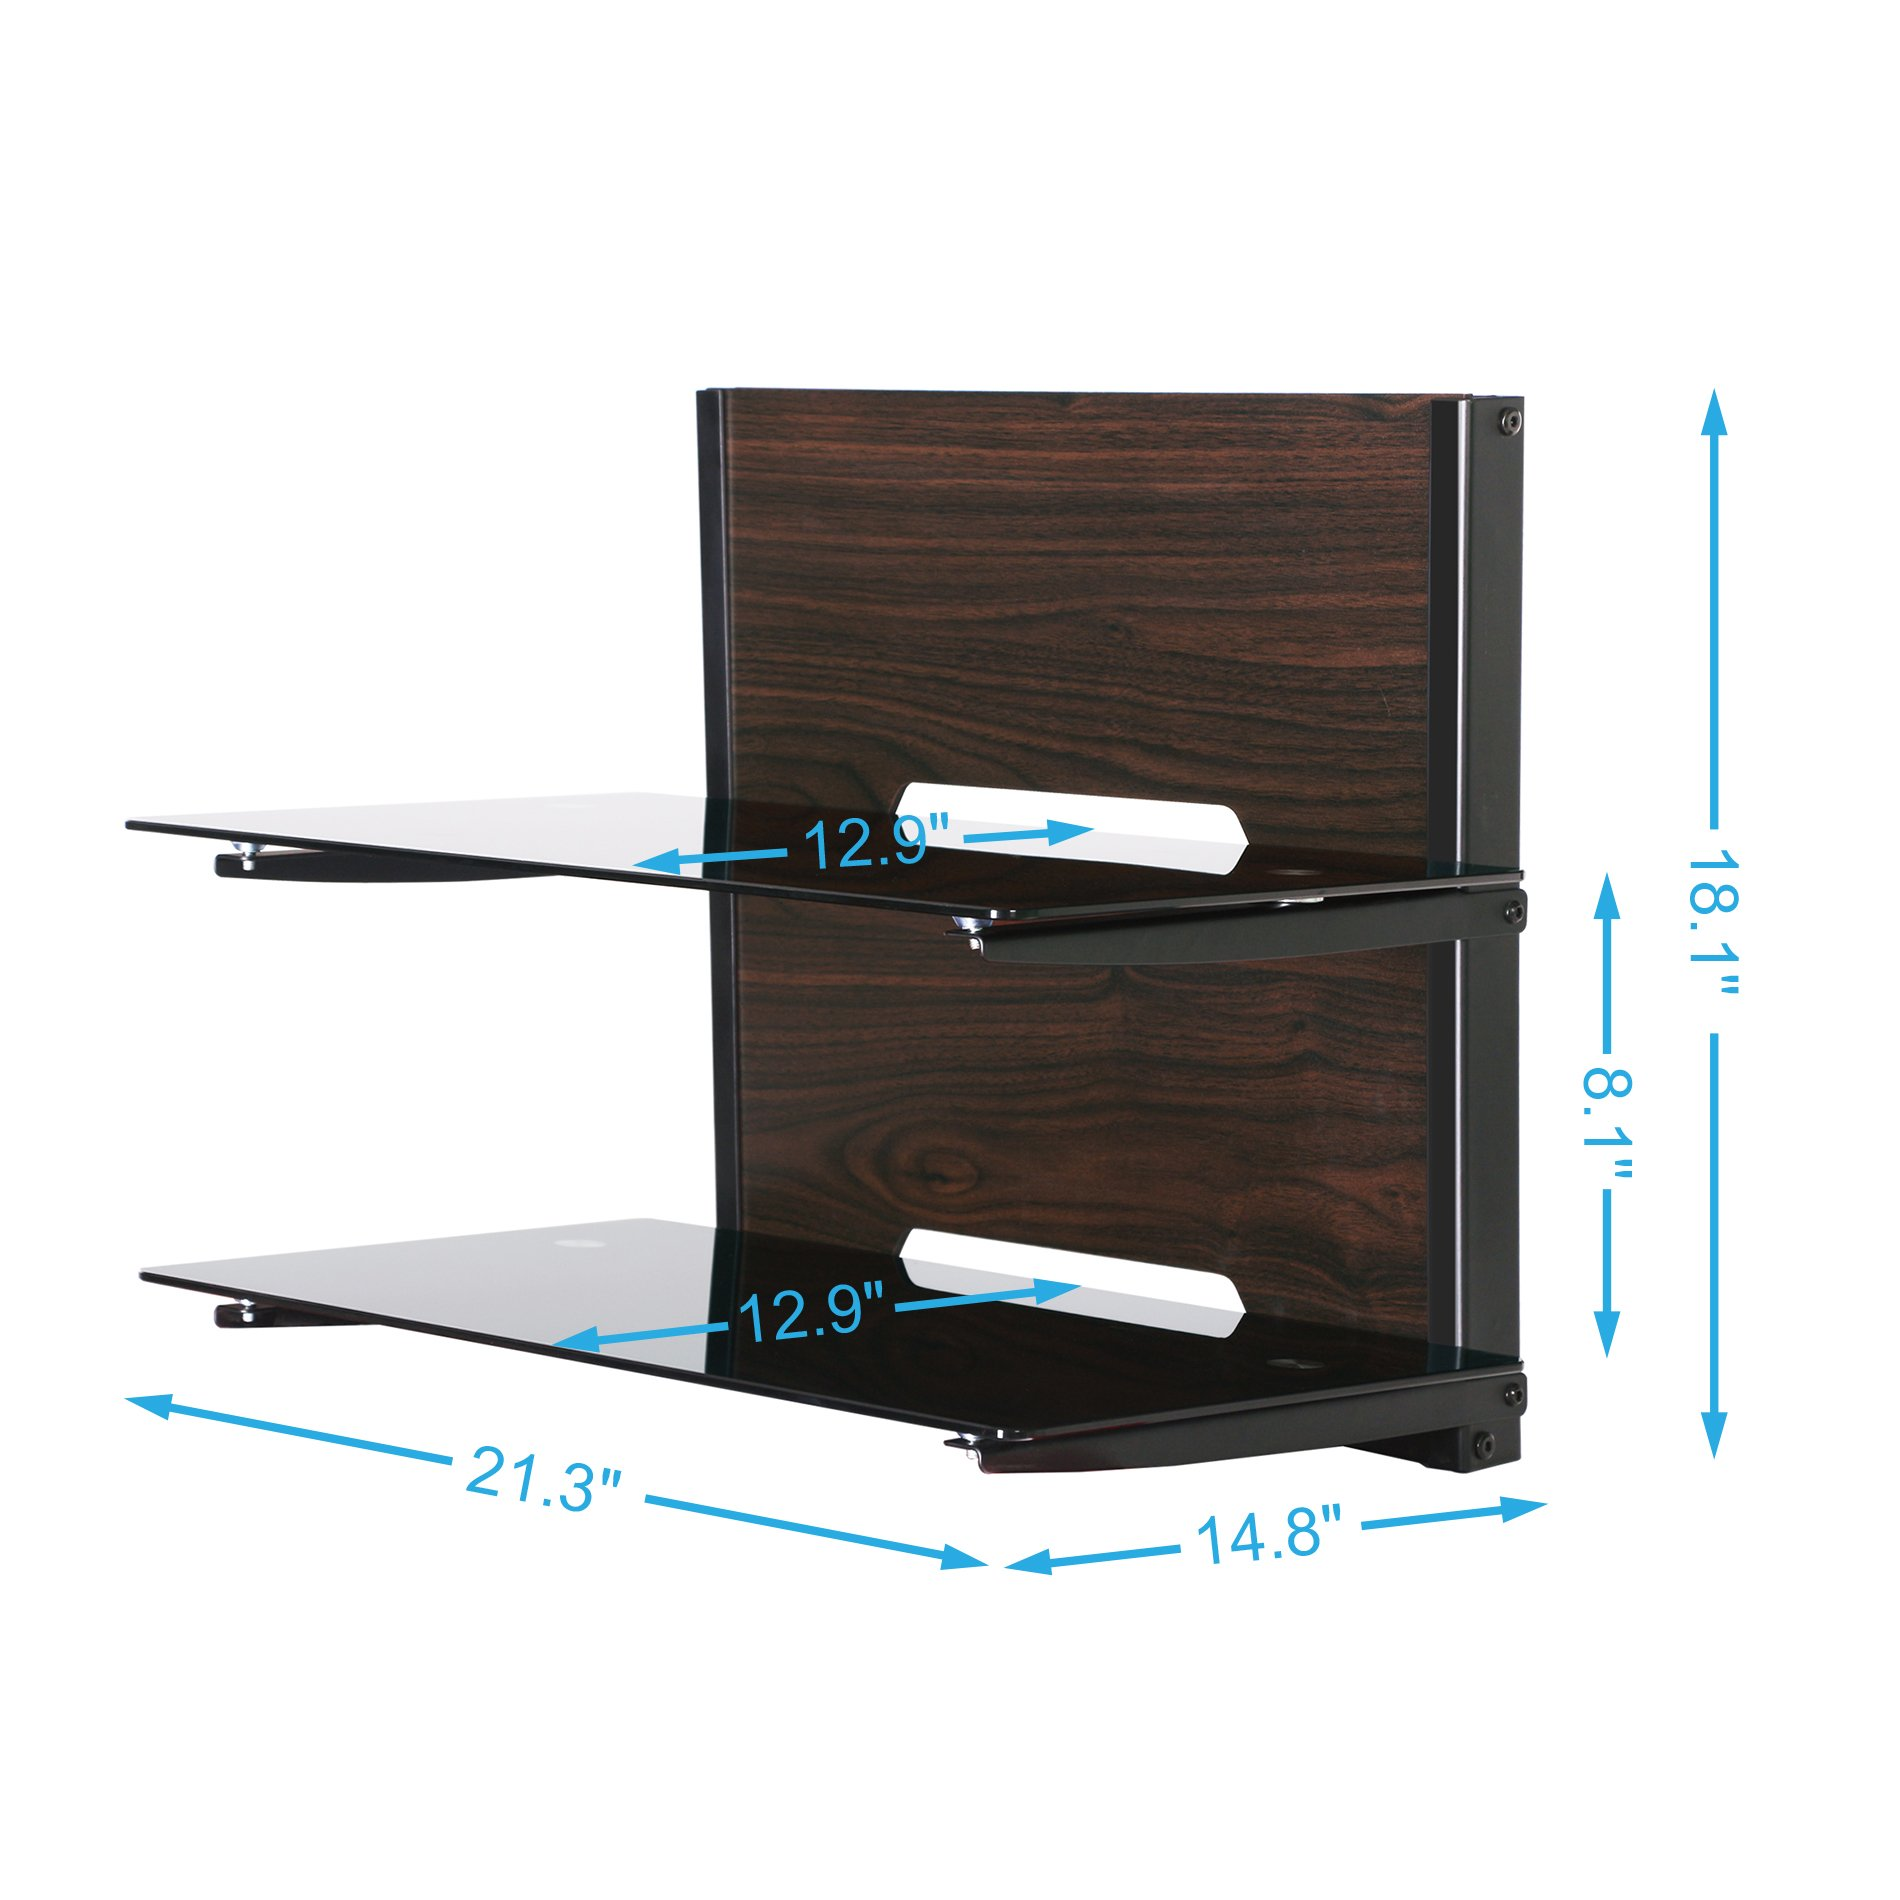 Fenge Fitueyes 2 Tier Wood Av Shelf Component Wall Mount with Tempered Glass Shelf for Dvd/xbox One/ps4/tv Component DS205401GB by Fenge (Image #3)